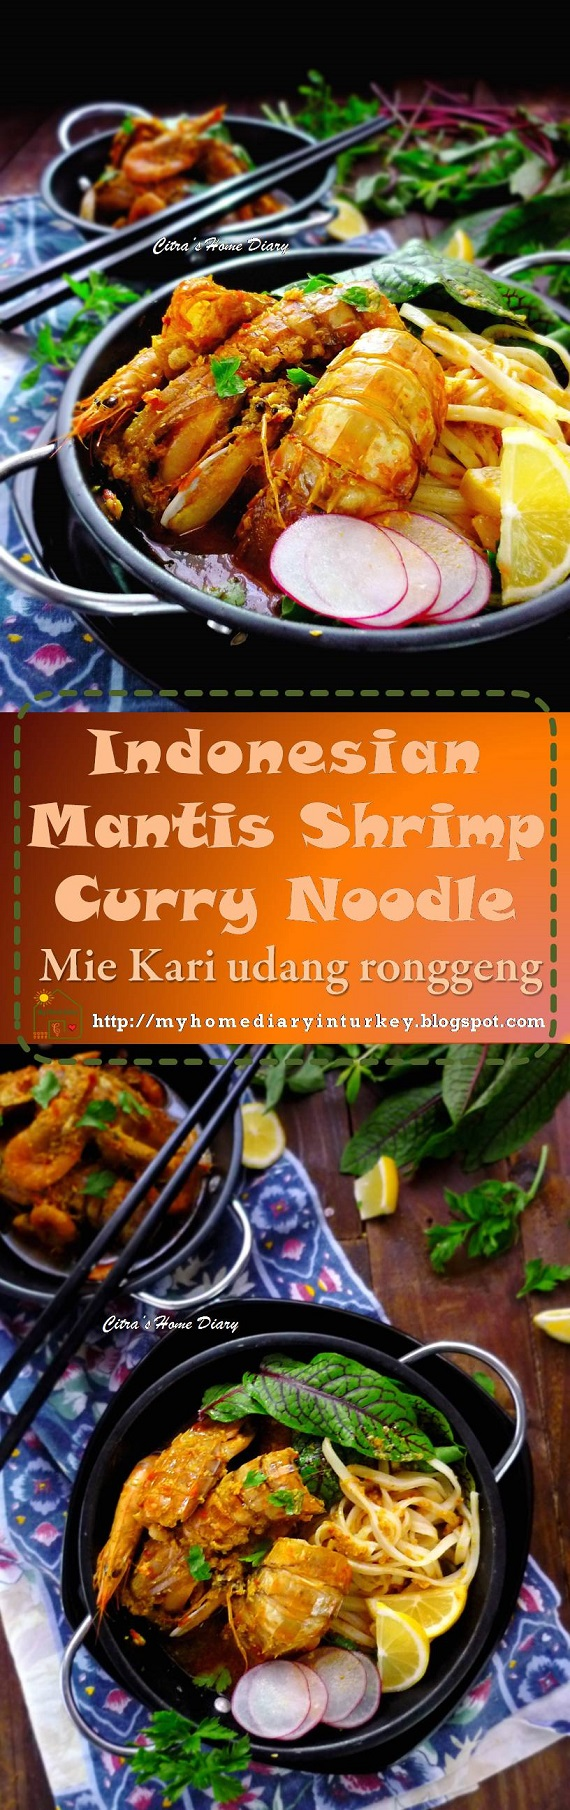 Mantis Shrimp Curry Noodle made from scratch / Mie Kari (kare) udang ronggeng